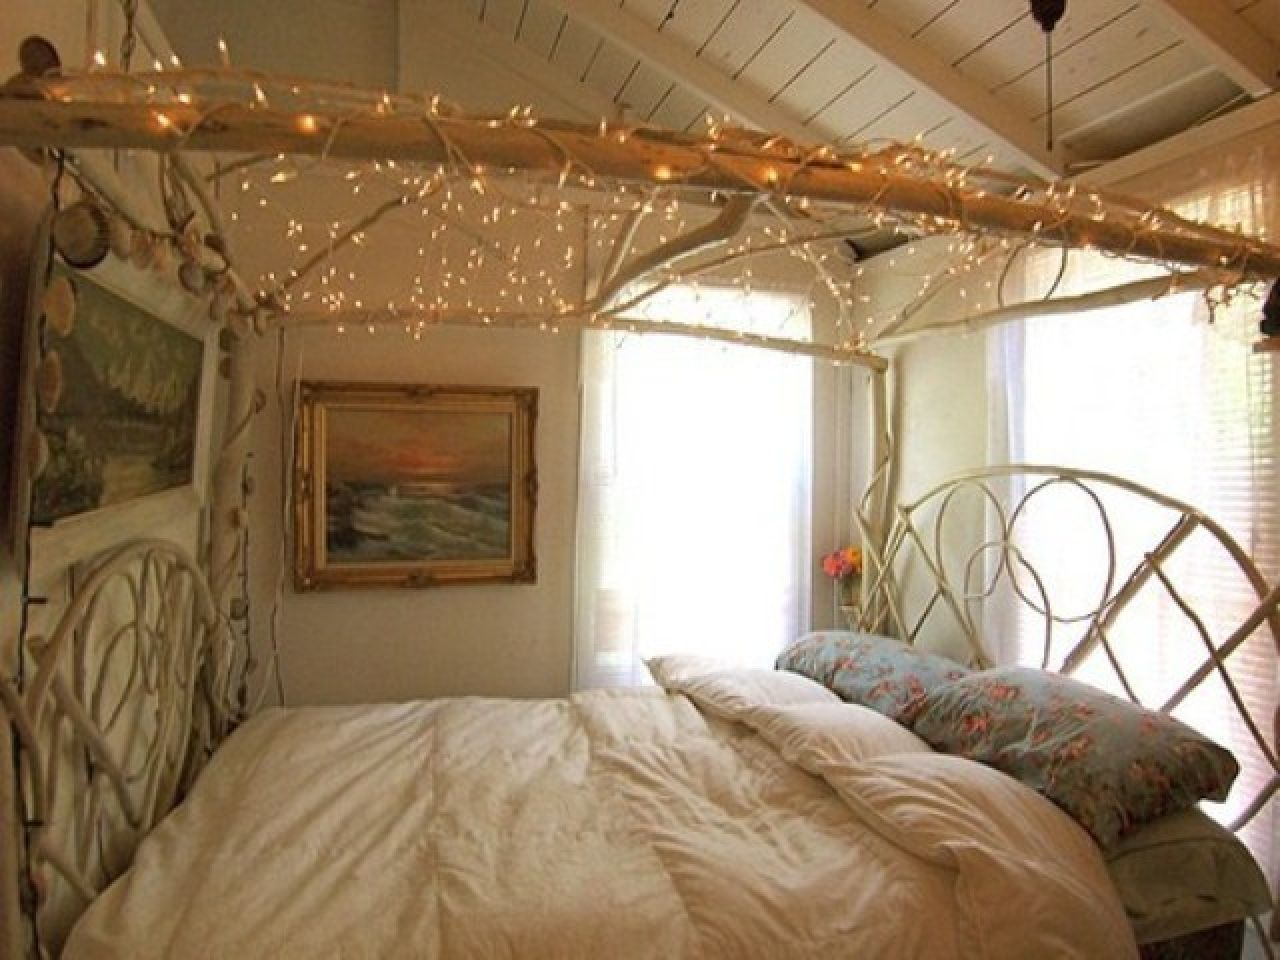 Bedroom Exciting Christmas Bedroom Decorating Ideas Girls Room Design  Interior Cubicle Cute Decor Decoration Teenage Home Rustic Canopy Bed  Sensational ...